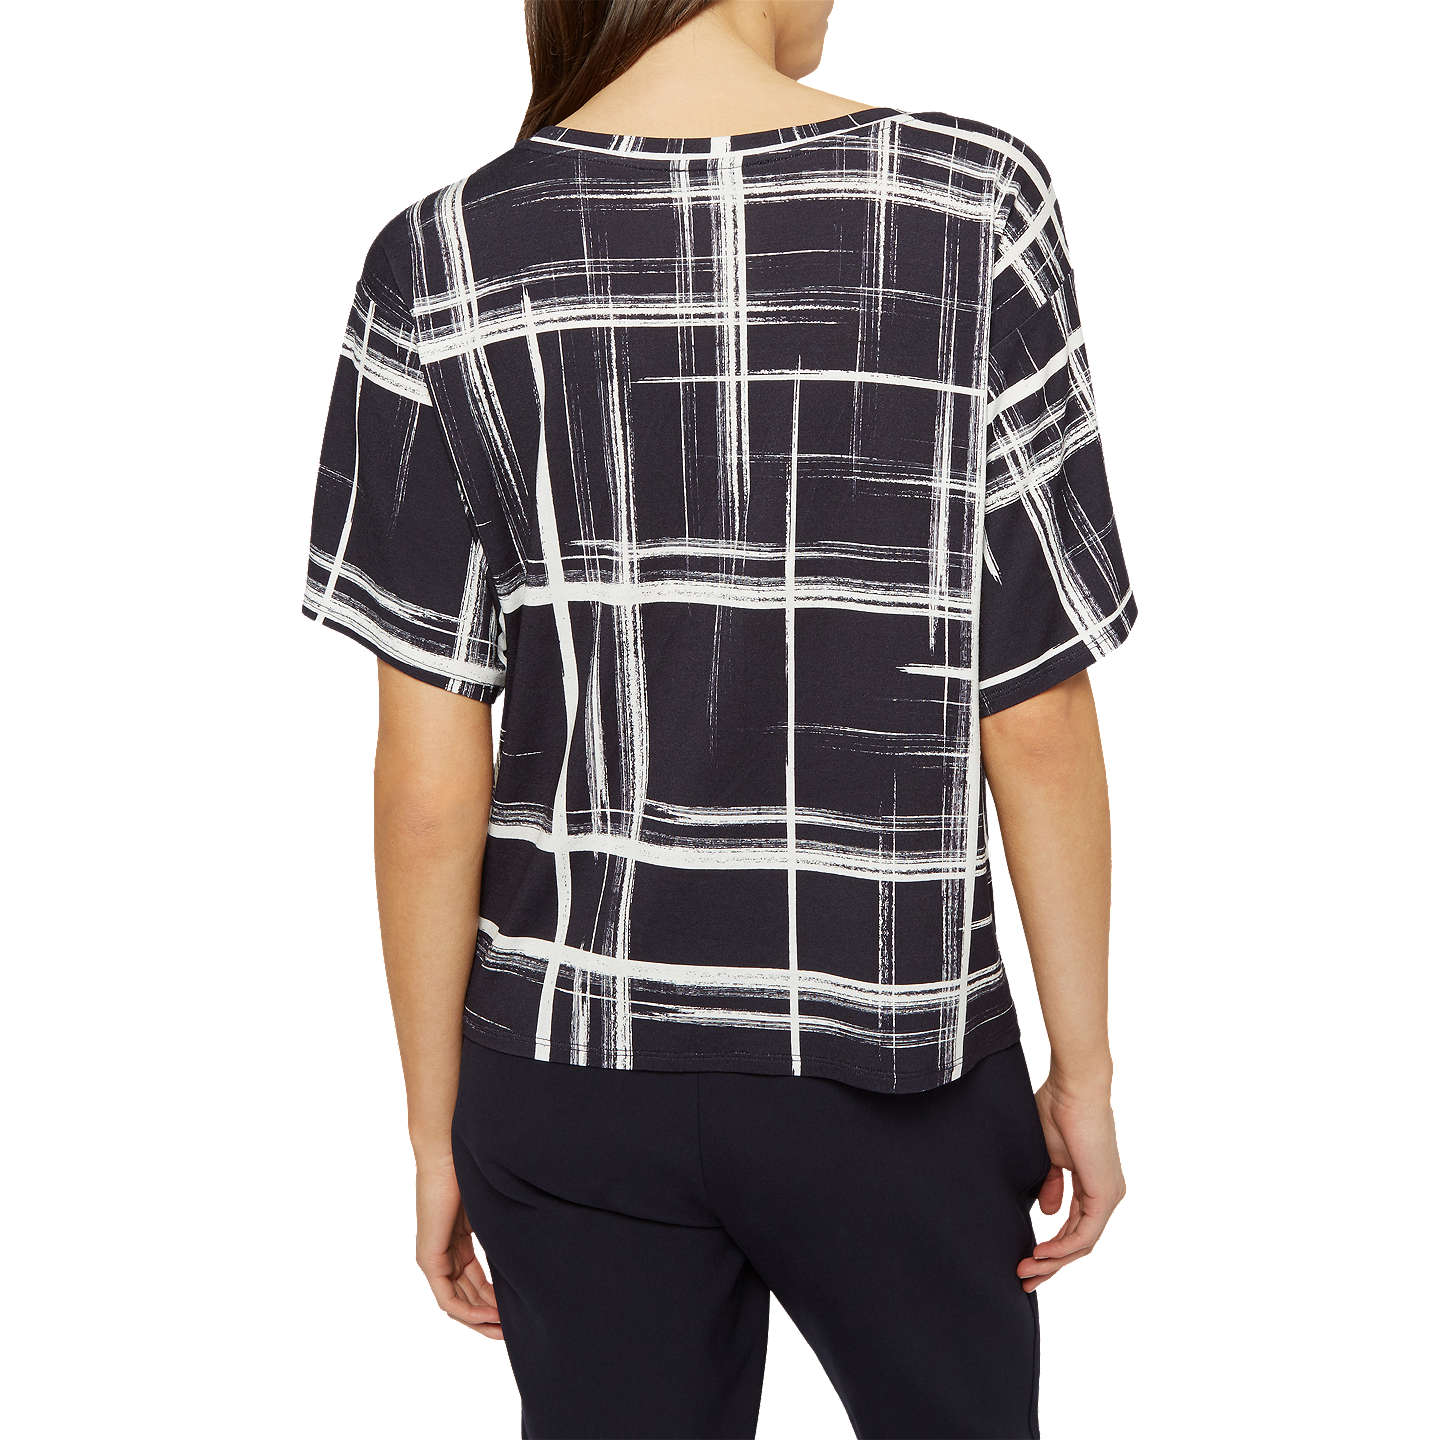 BuyJaeger Graphic Check Jersey T-Shirt, Navy/Ivory, XS Online at johnlewis.com